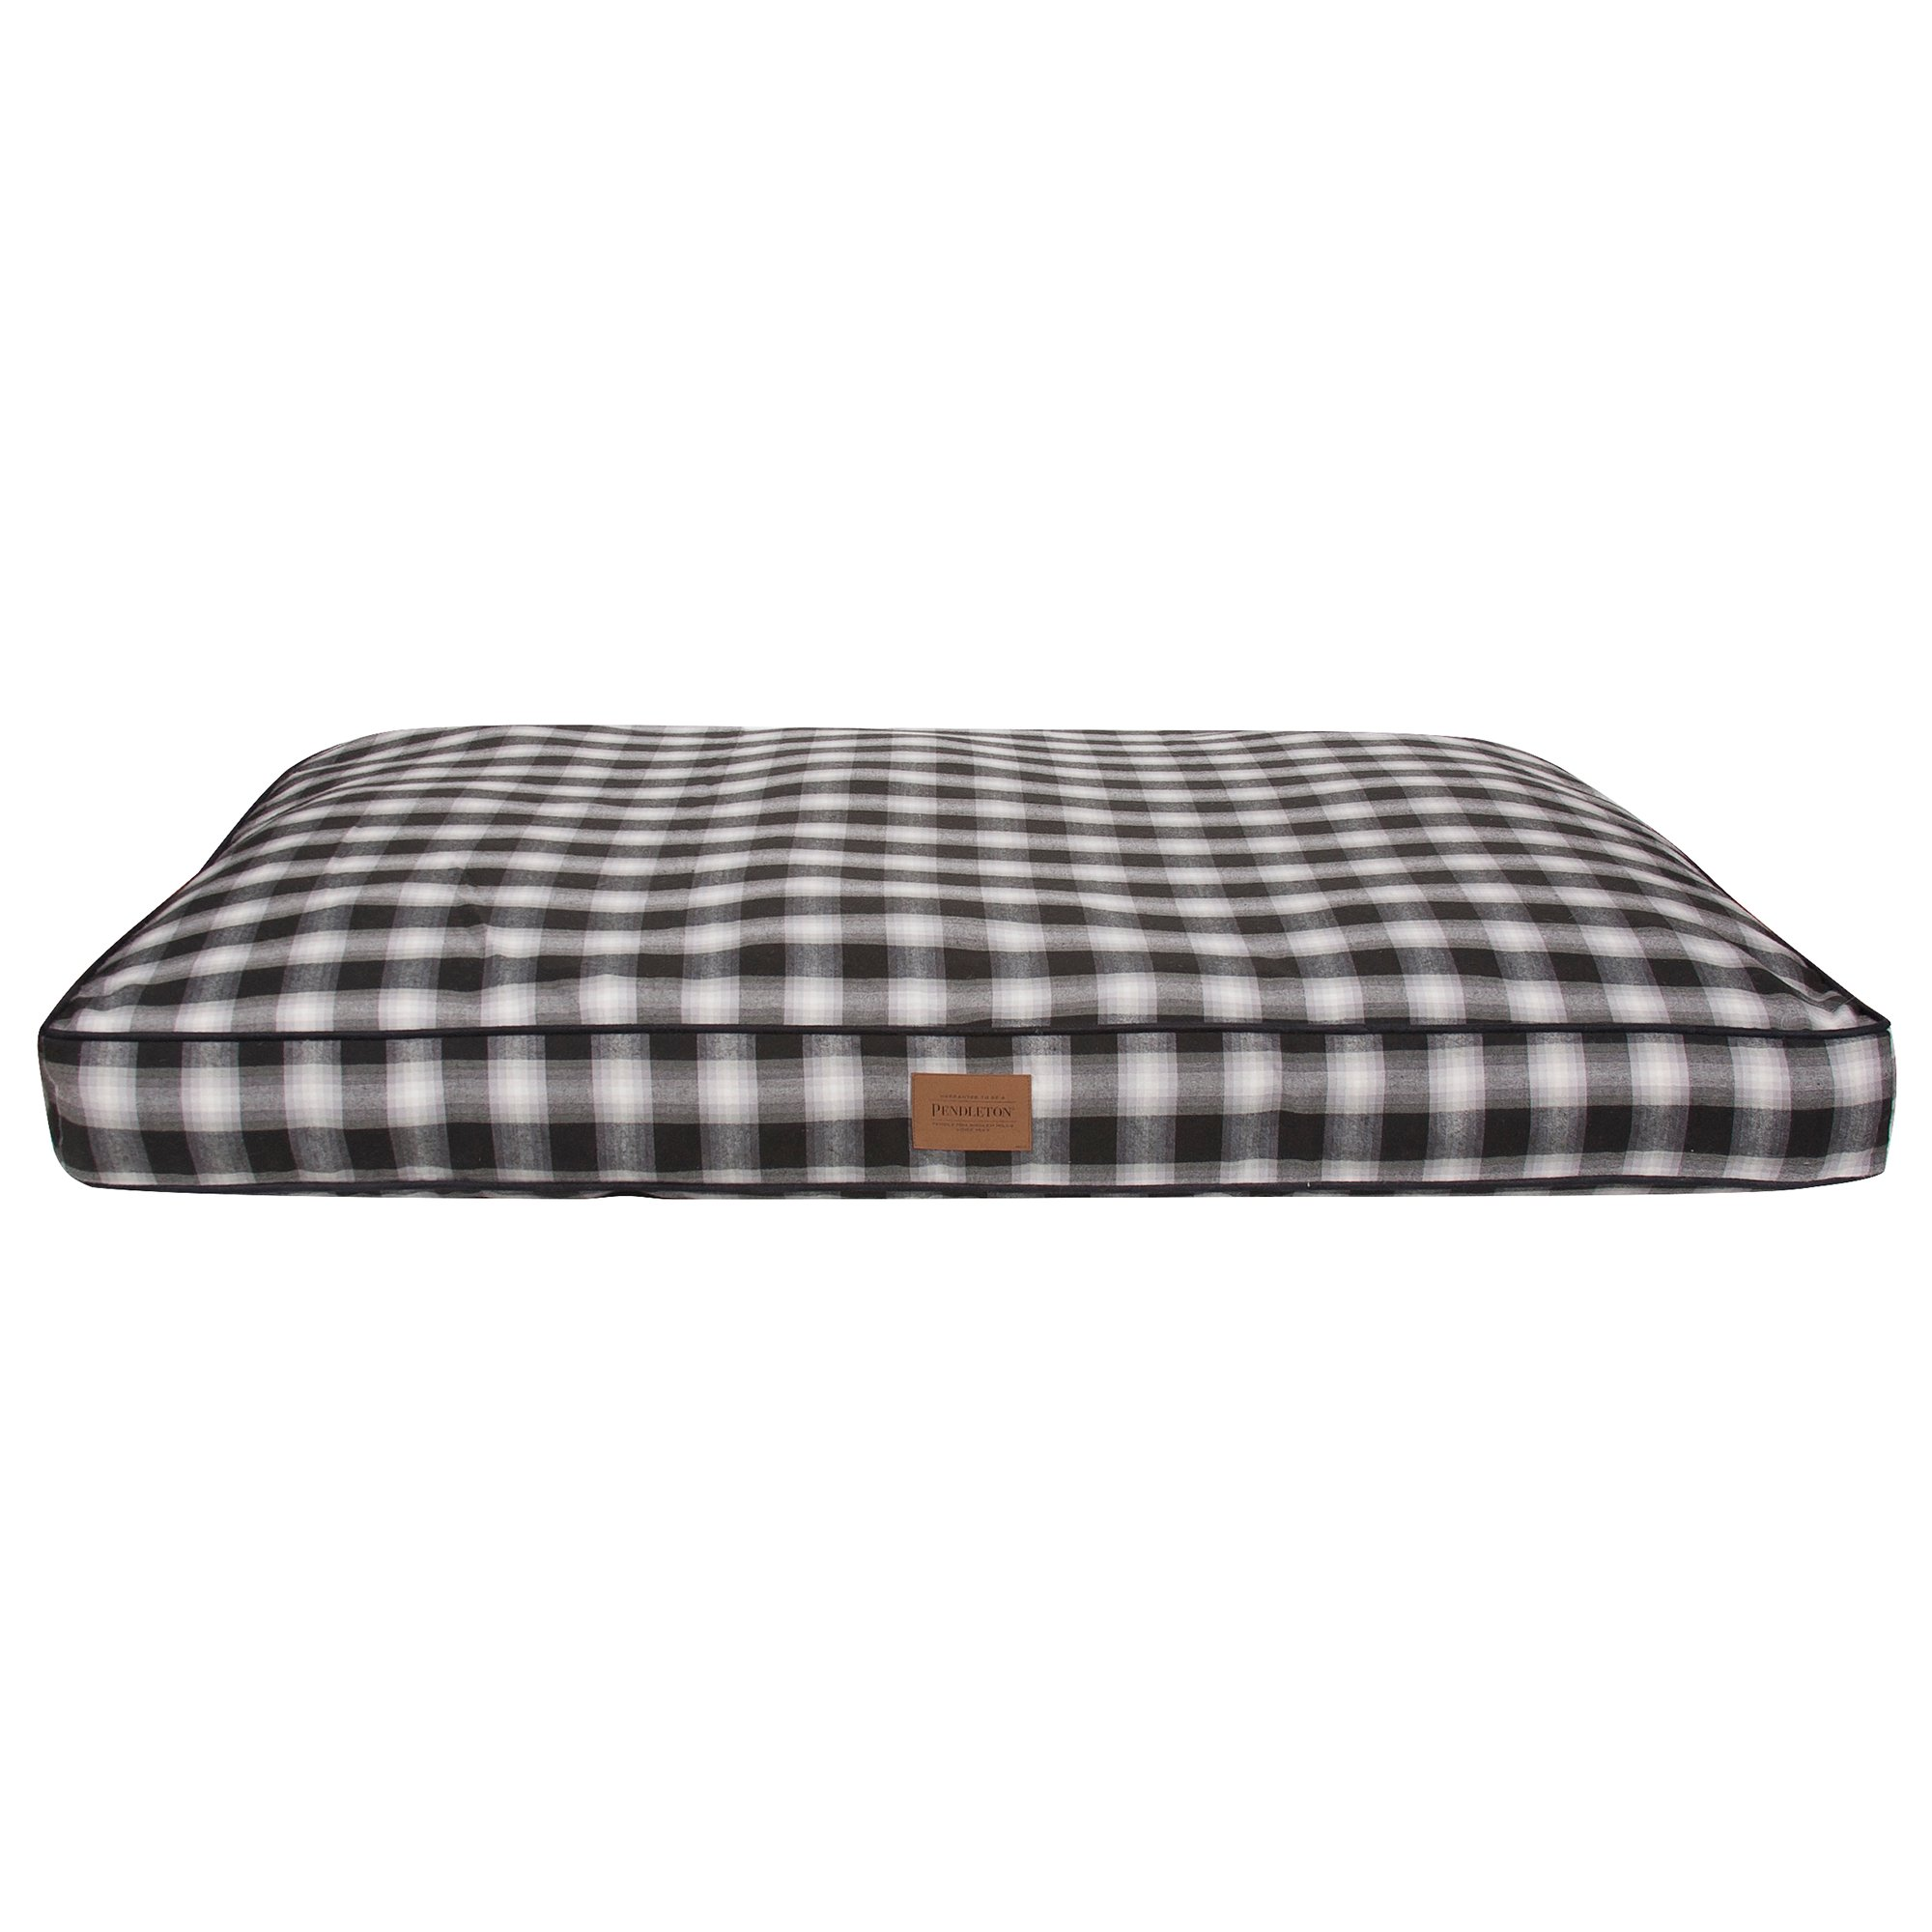 pet dog cover best dogs berkley luxury jensen oval bed for pin stuff removable